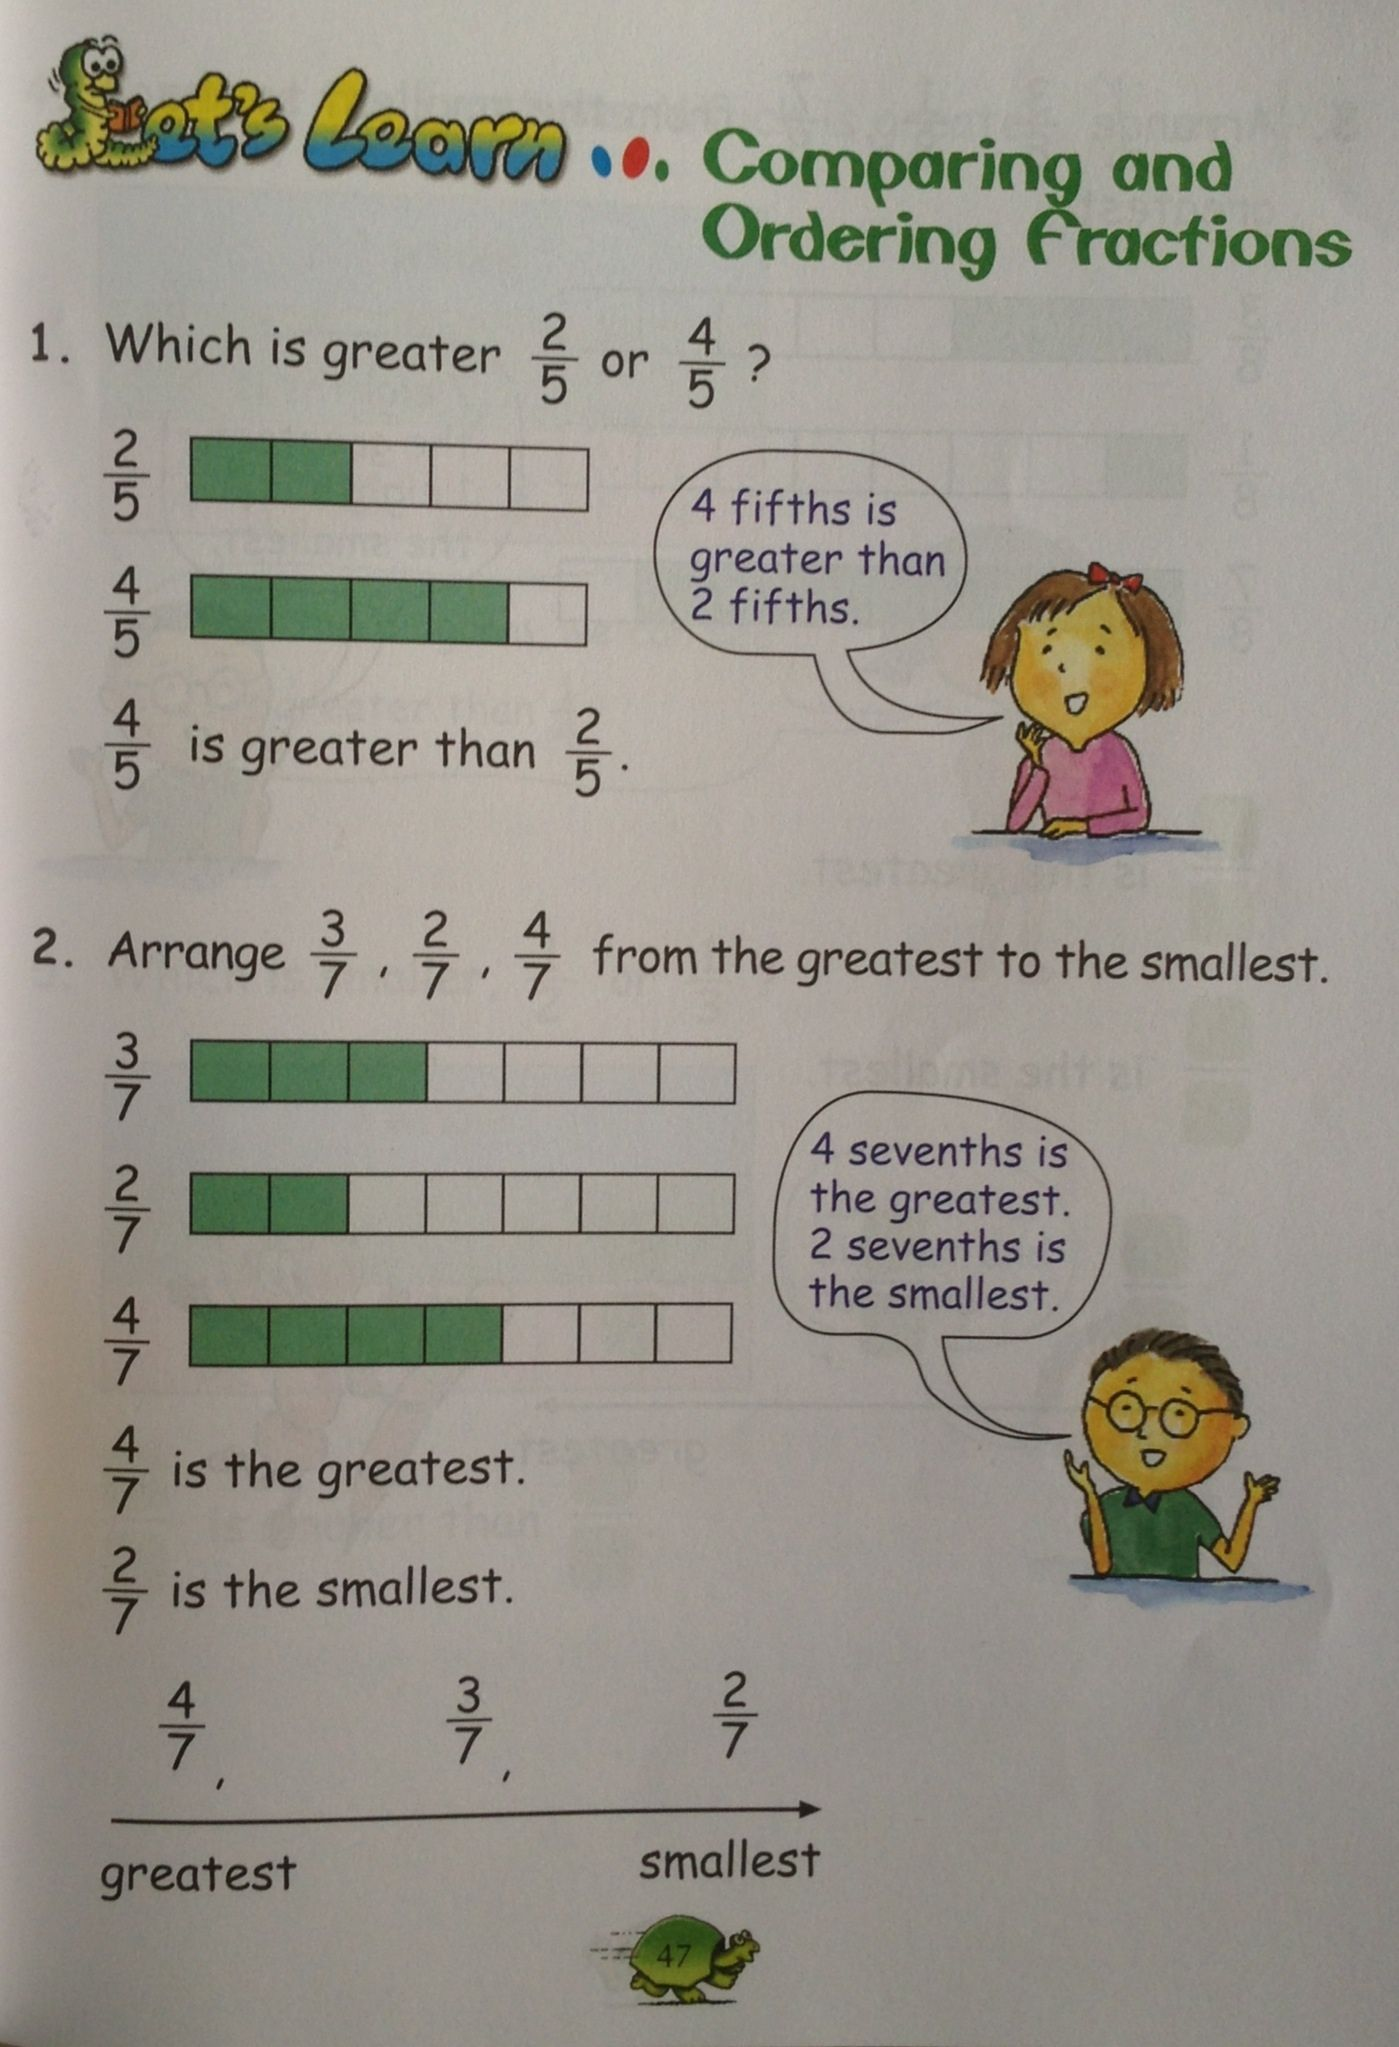 Learning Fractions Via Models A Grade 2 Textbook Example Singapore Math Go Math Kindergarten Math Fractions Free Printable Math Worksheets